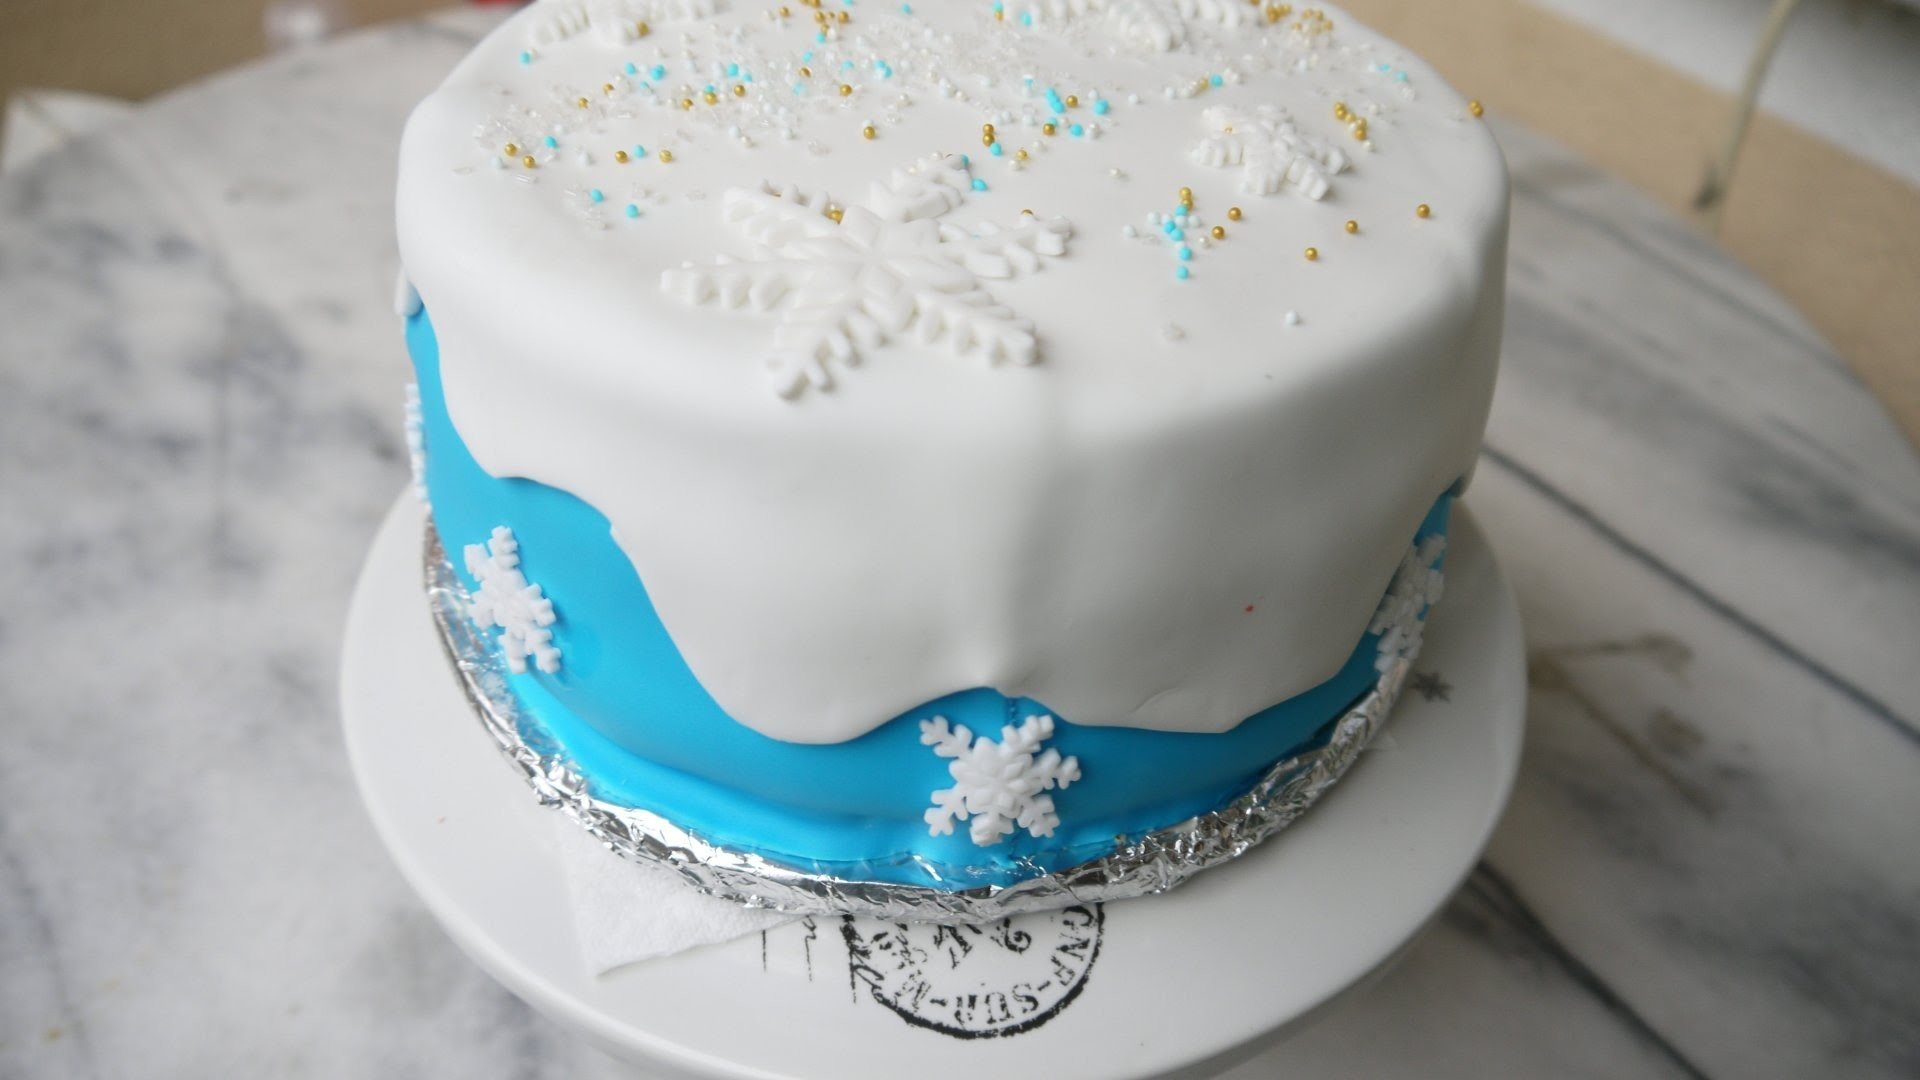 diy torte dekorieren mit fondant selber machen frozen cake elsa torte. Black Bedroom Furniture Sets. Home Design Ideas